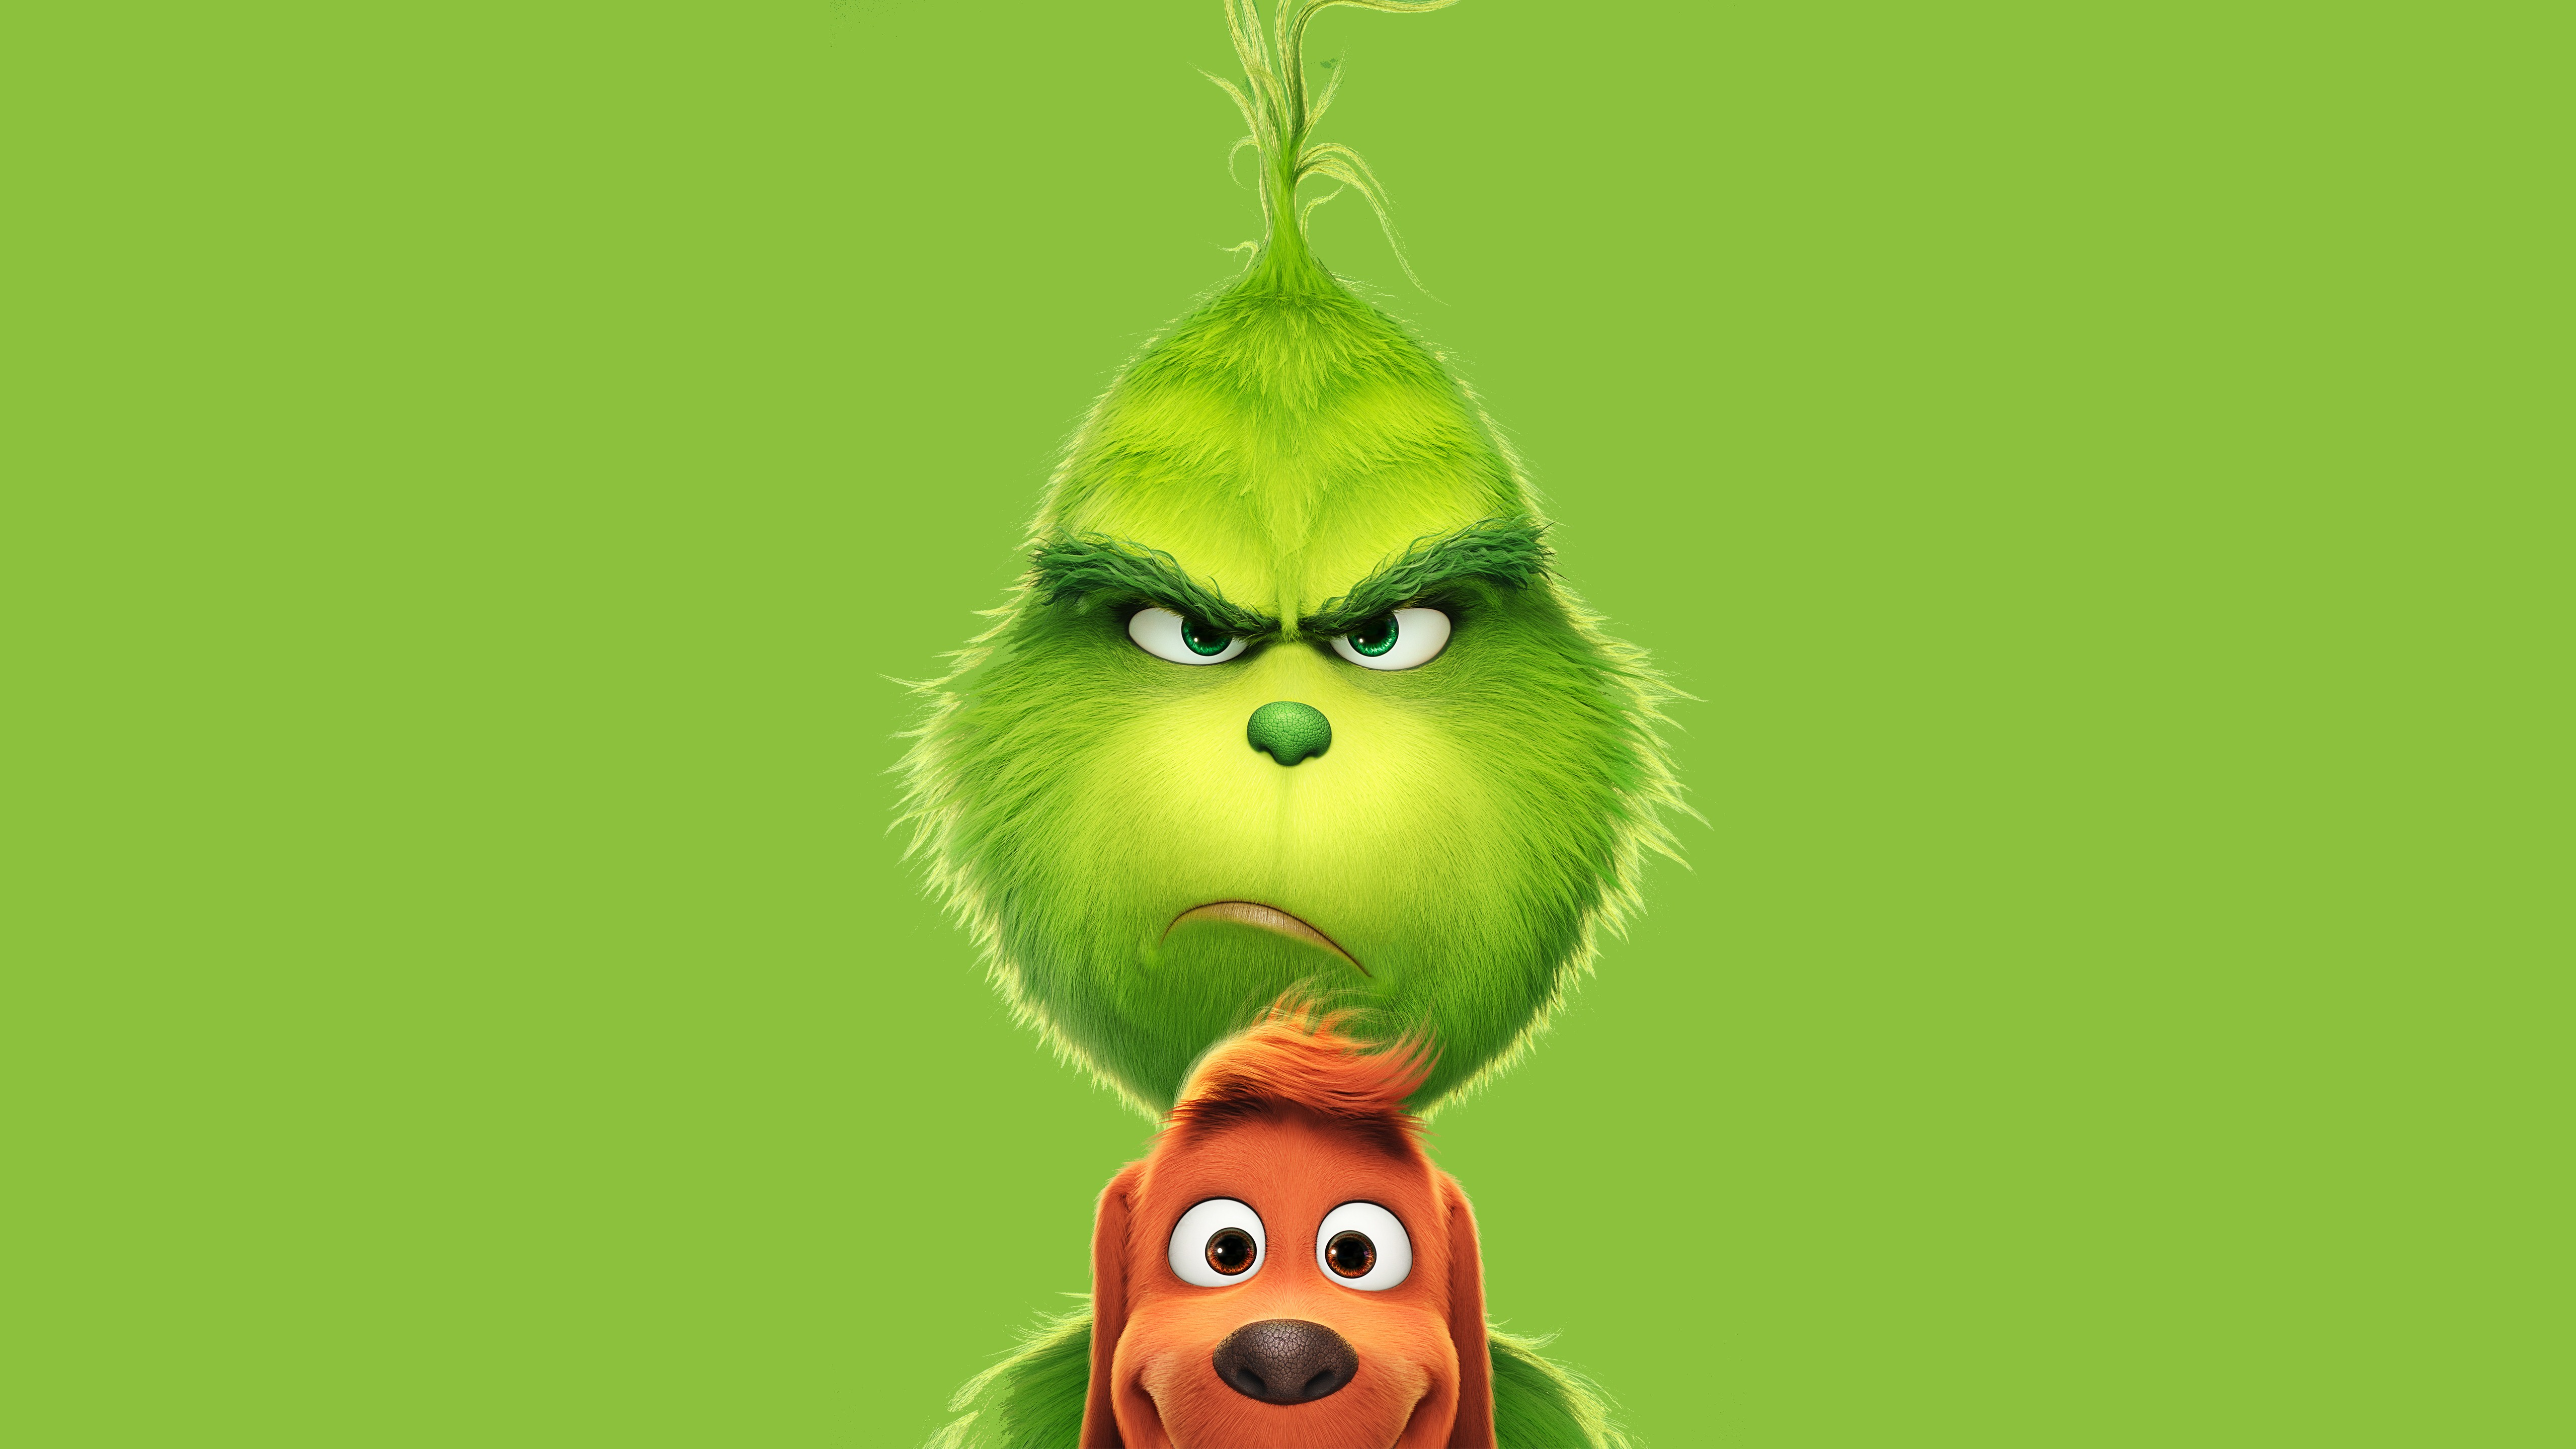 The Grinch Fantasy Movie 5K Wallpaper HD Wallpapers 5120x2880